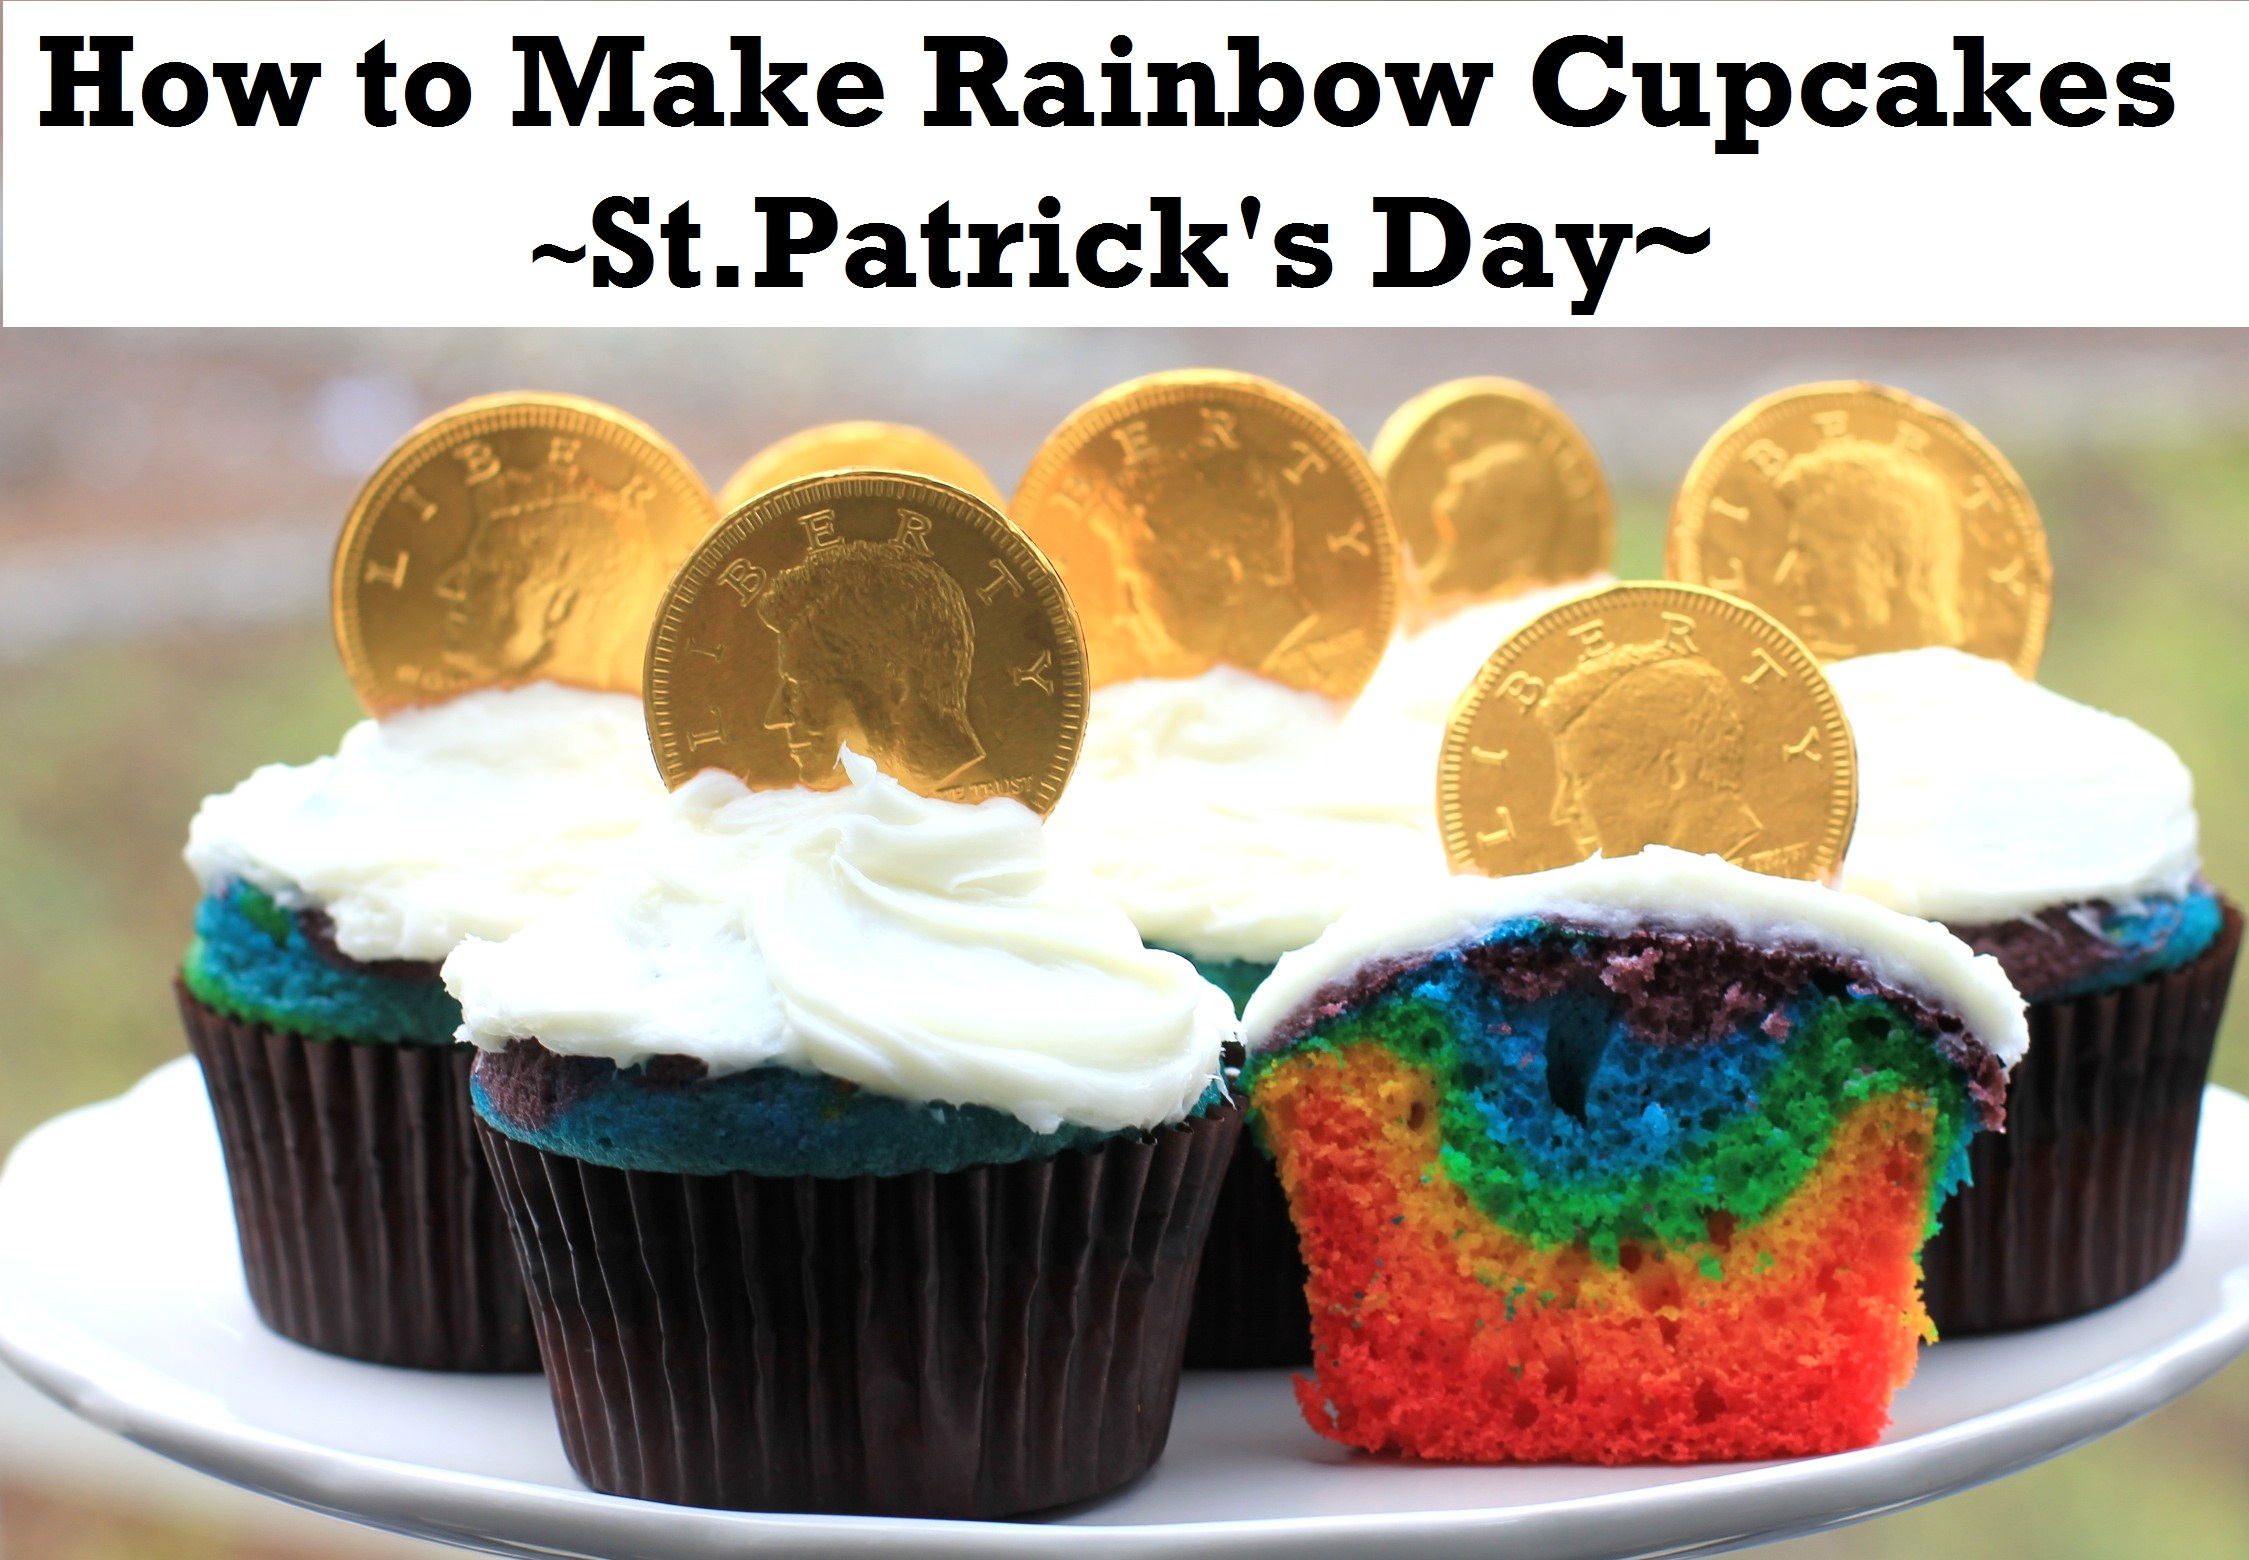 St. Patrick's Day Recipe: How to Make Rainbow Cupcakes